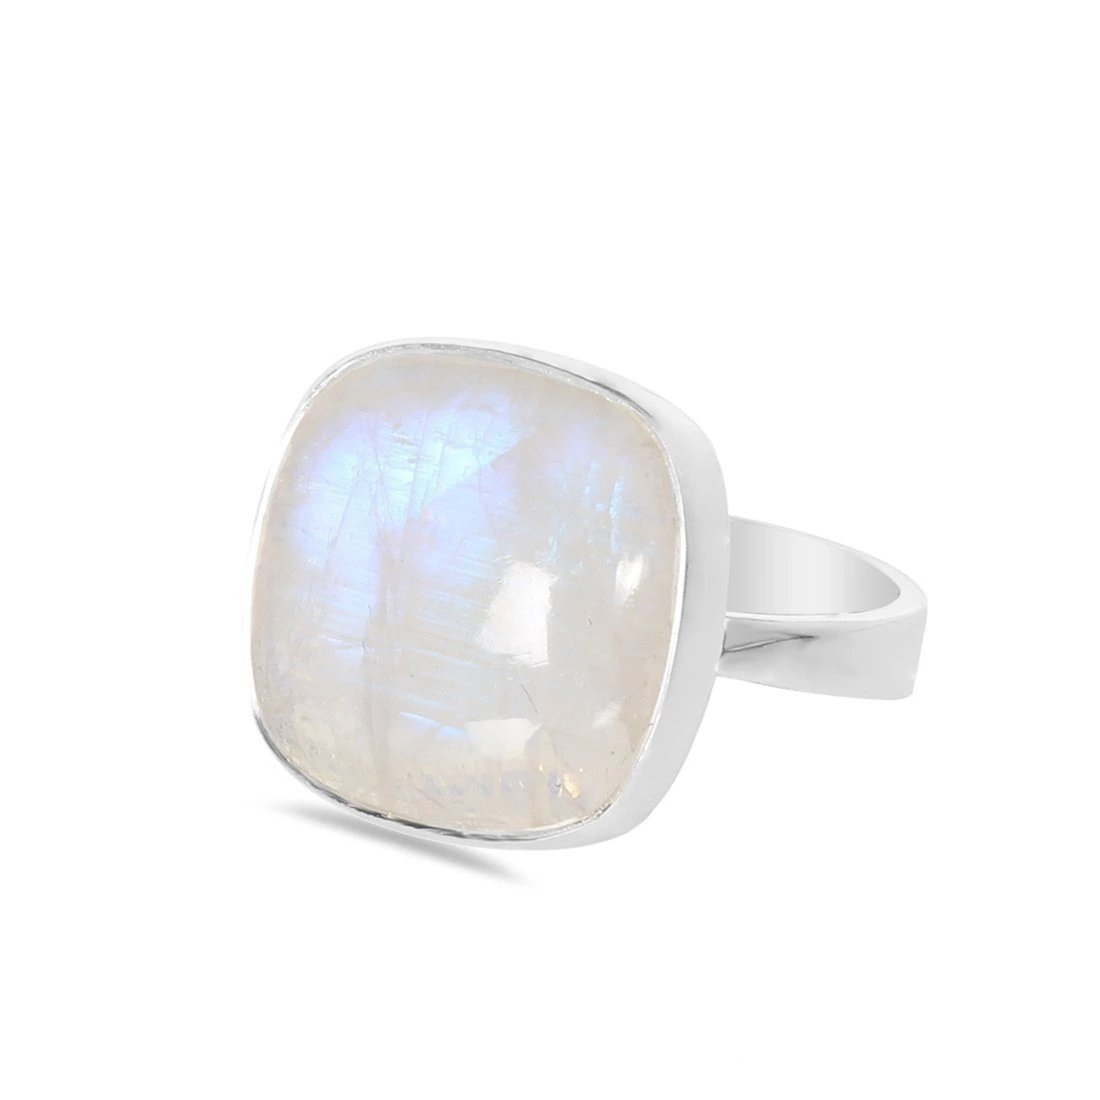 Moonstone Ring-Enchantress Moonstone Ring 925 SILVER & MOONSTONE